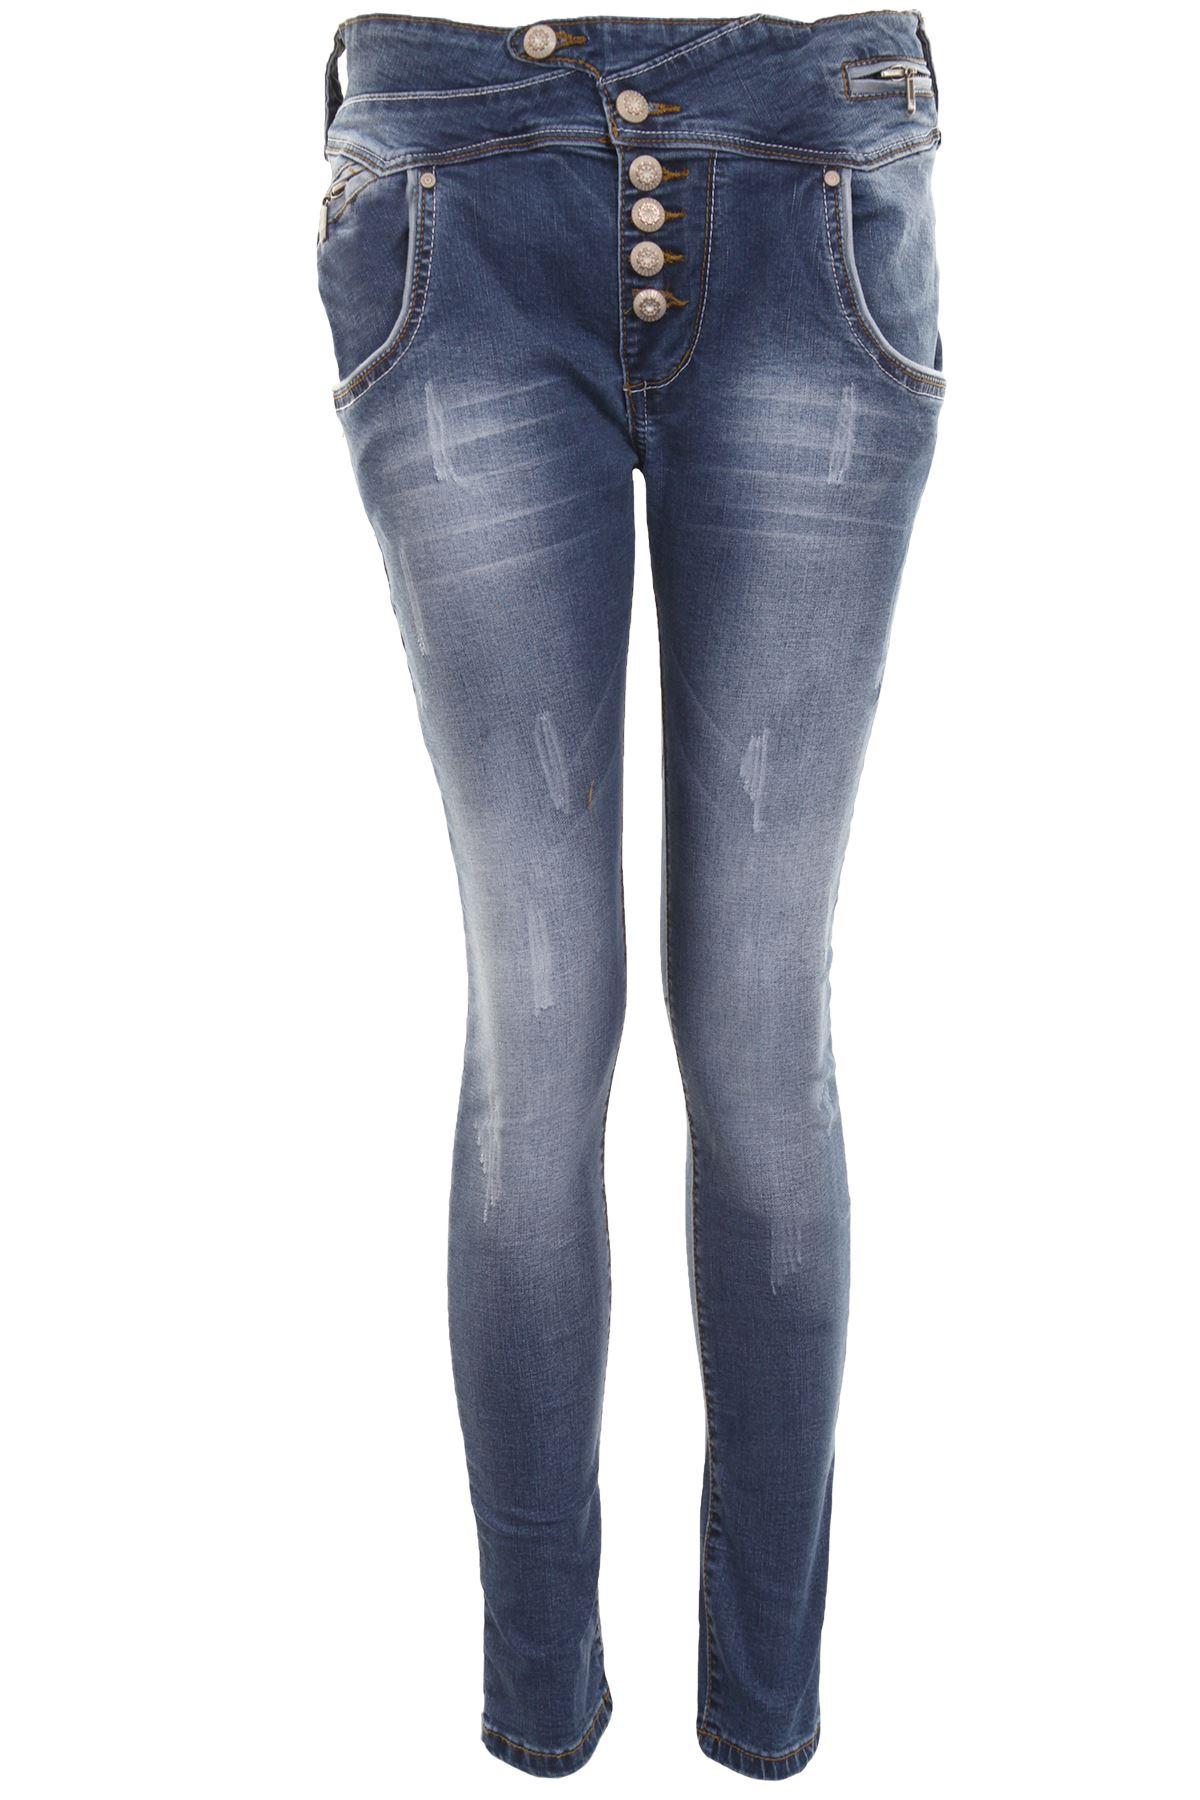 Rock Republic Jeans Women